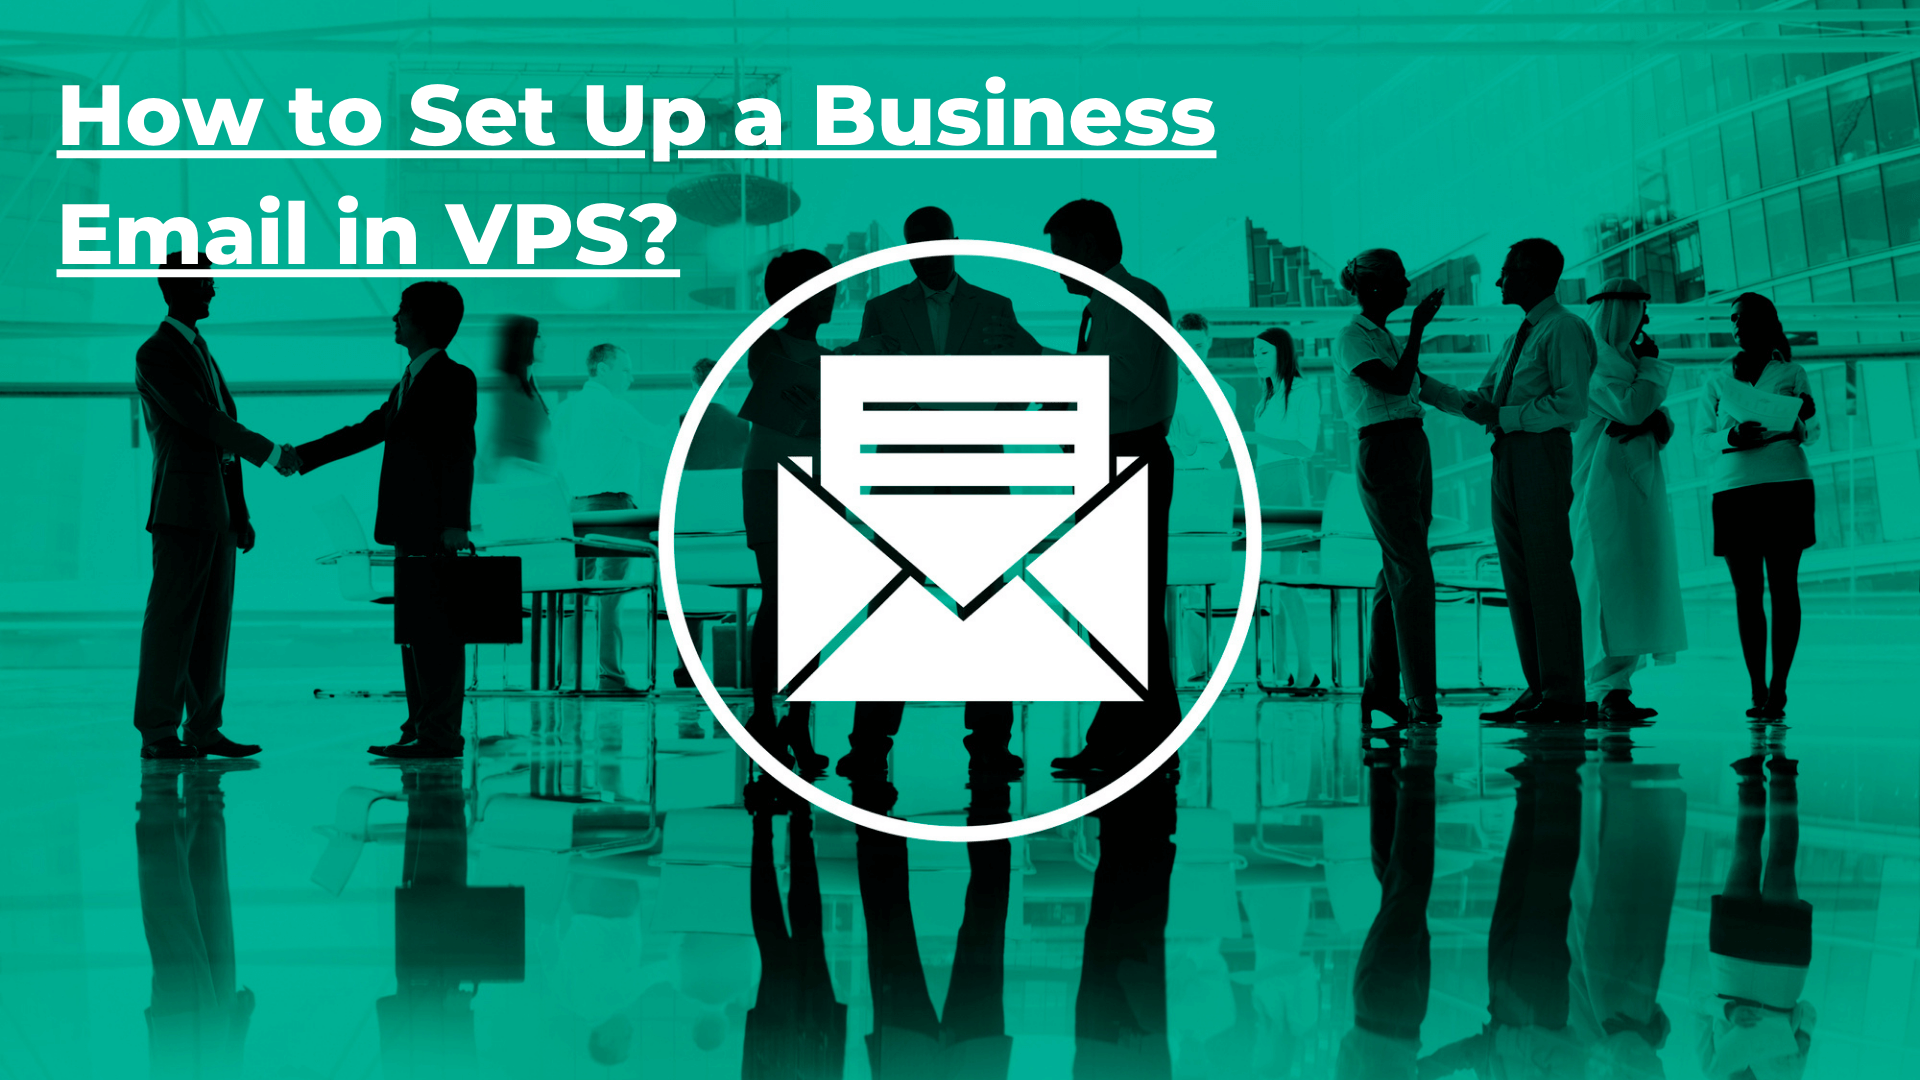 How to Set Up a Business Email in VPS?